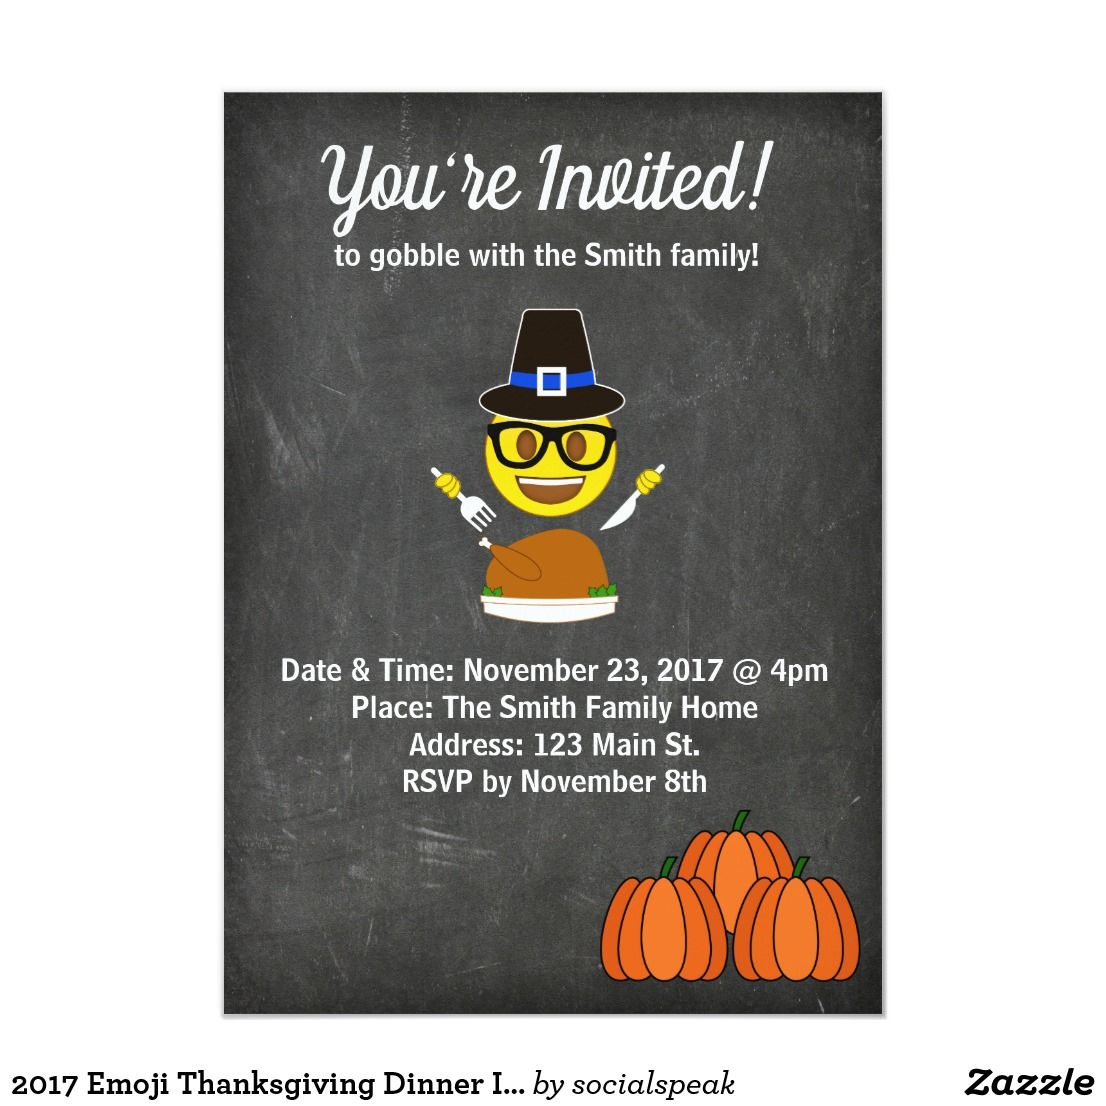 2017 Emoji Thanksgiving Dinner Invitation Thanksgiving Dinner Invitation Thanksgiving Invitation Dinner Invitations